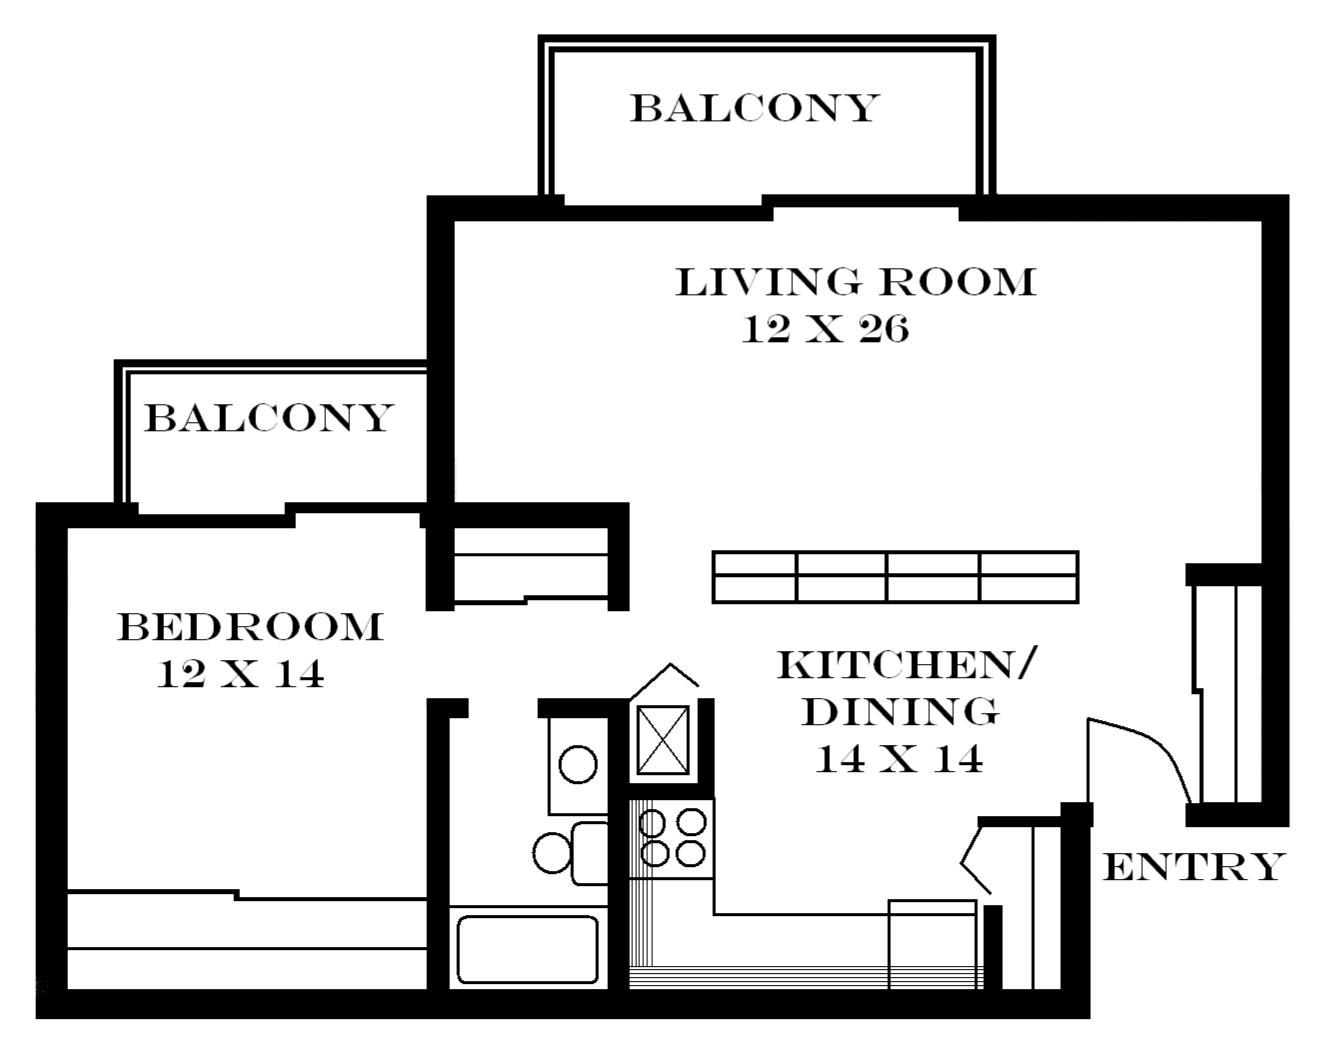 bedroom 1 bath 675 00 month 822 square feet one bedroom plans are